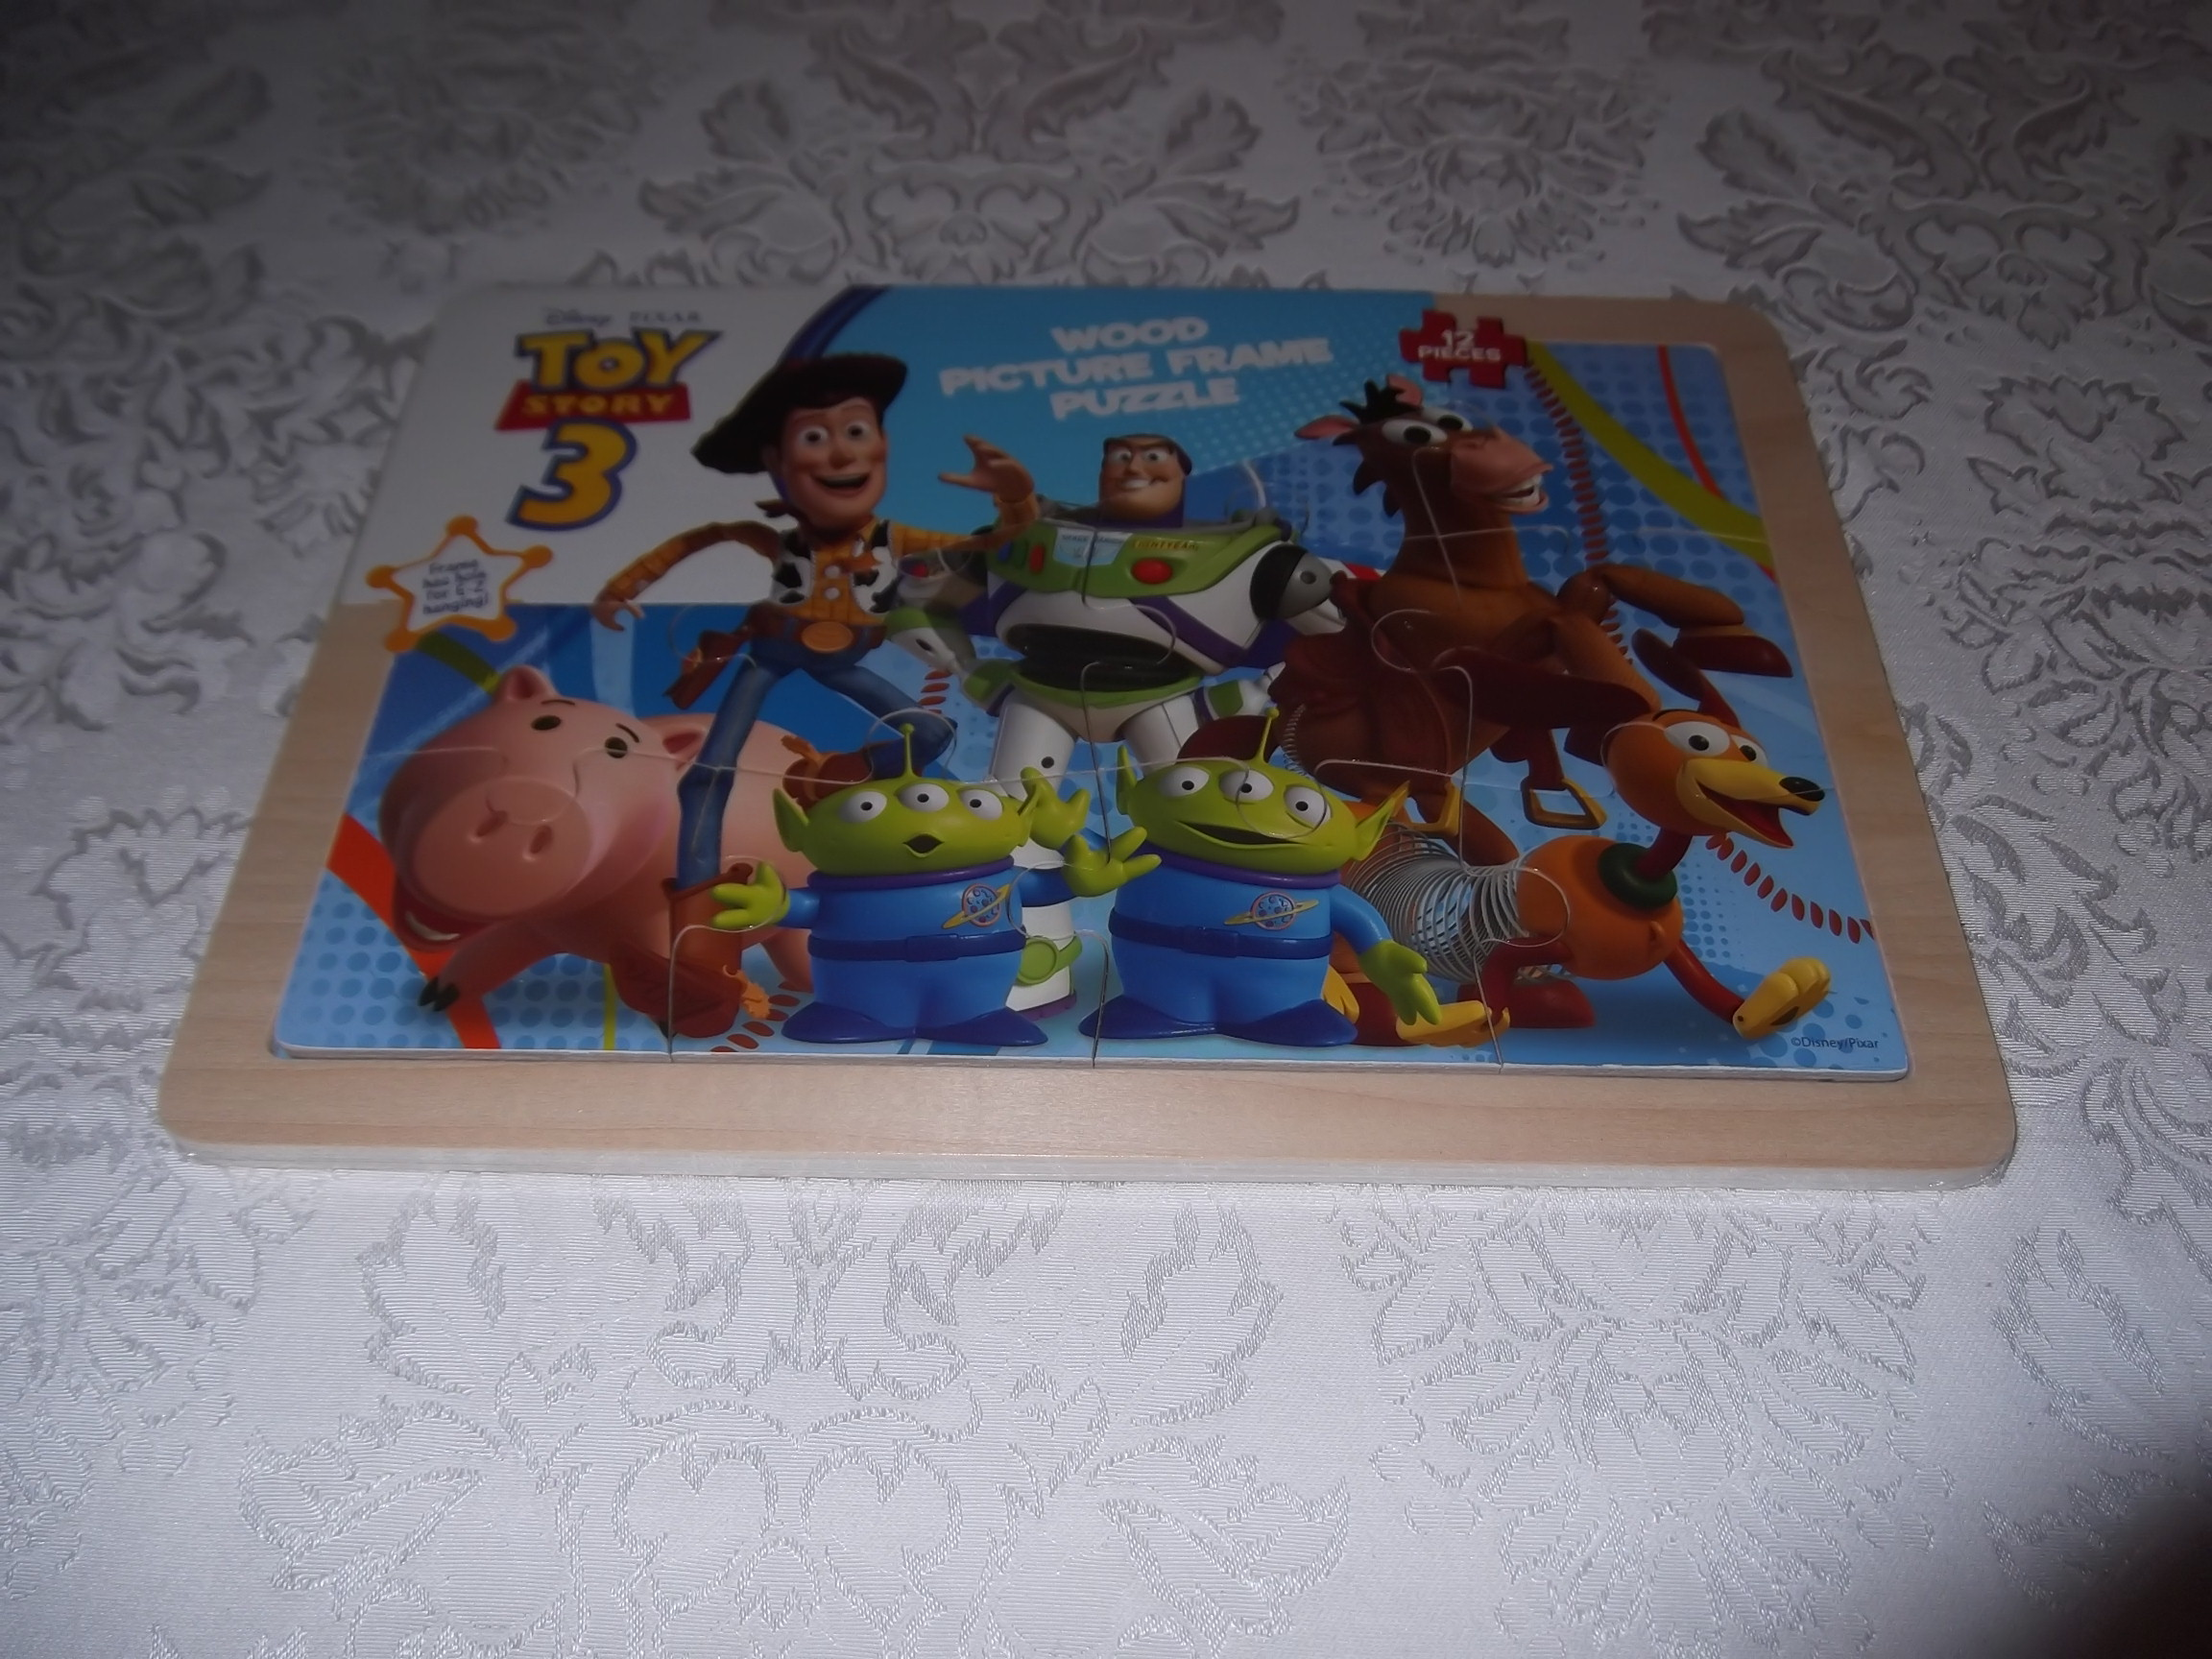 Disney PIXAR Toy Story 3 Wooden Puzzle 12 Pieces 8.5 x 11.75 inches NEW